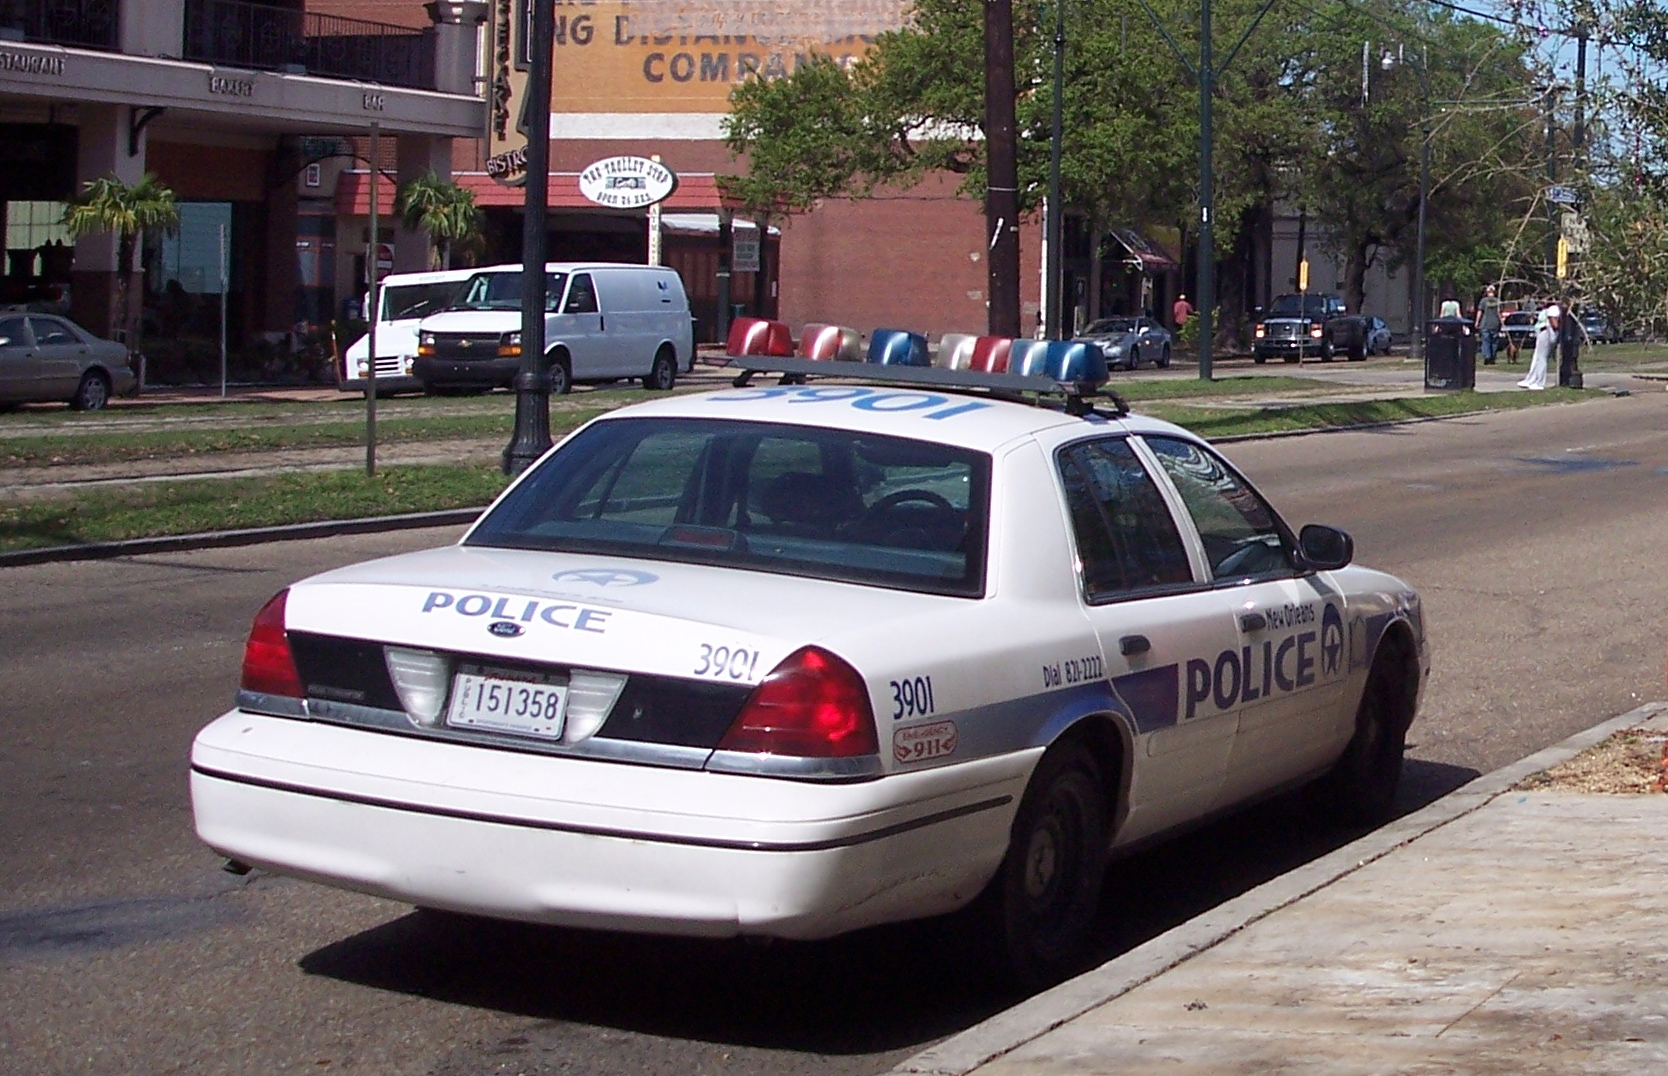 Retired Police Vehicles For Sale >> Used Cop Cars For Sale Retired Police Cars.html | Autos Weblog